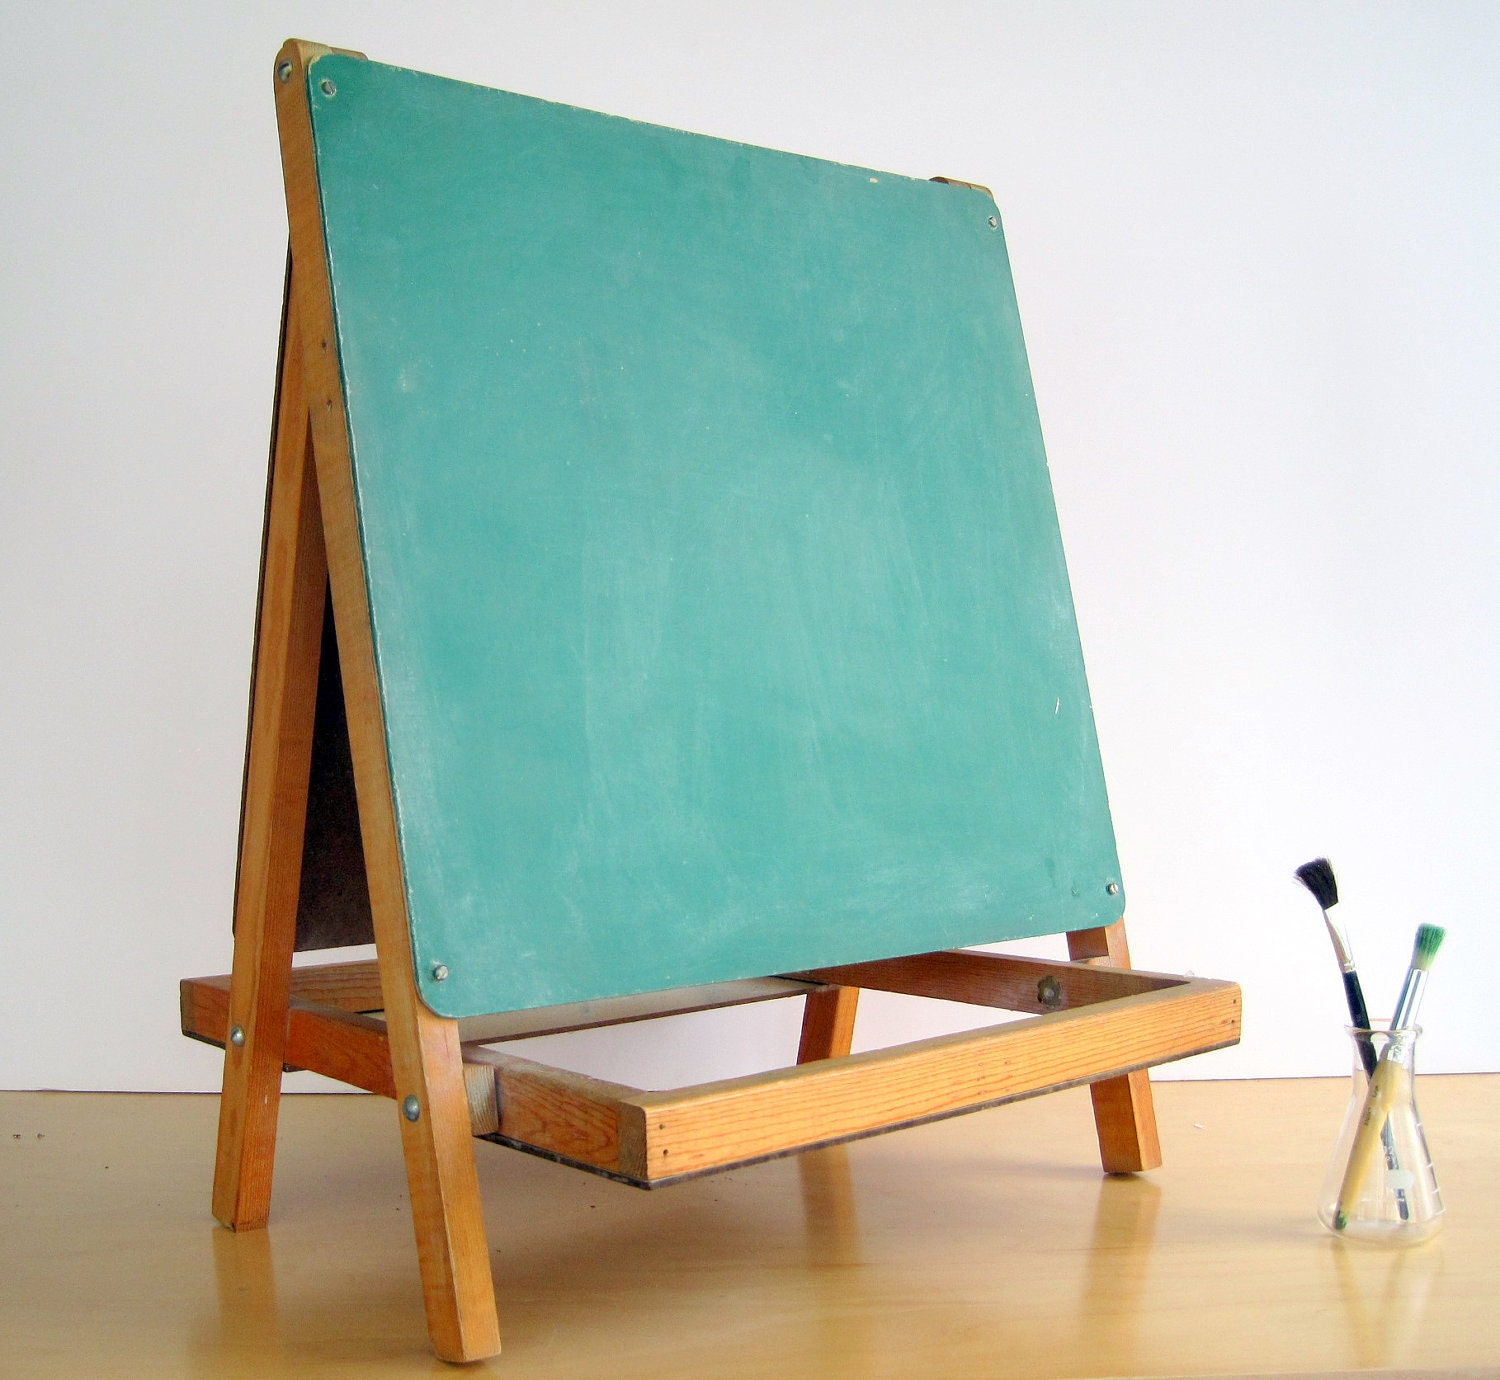 Double Sided Easel Chalkboard Wood Stand Chalk Ledge